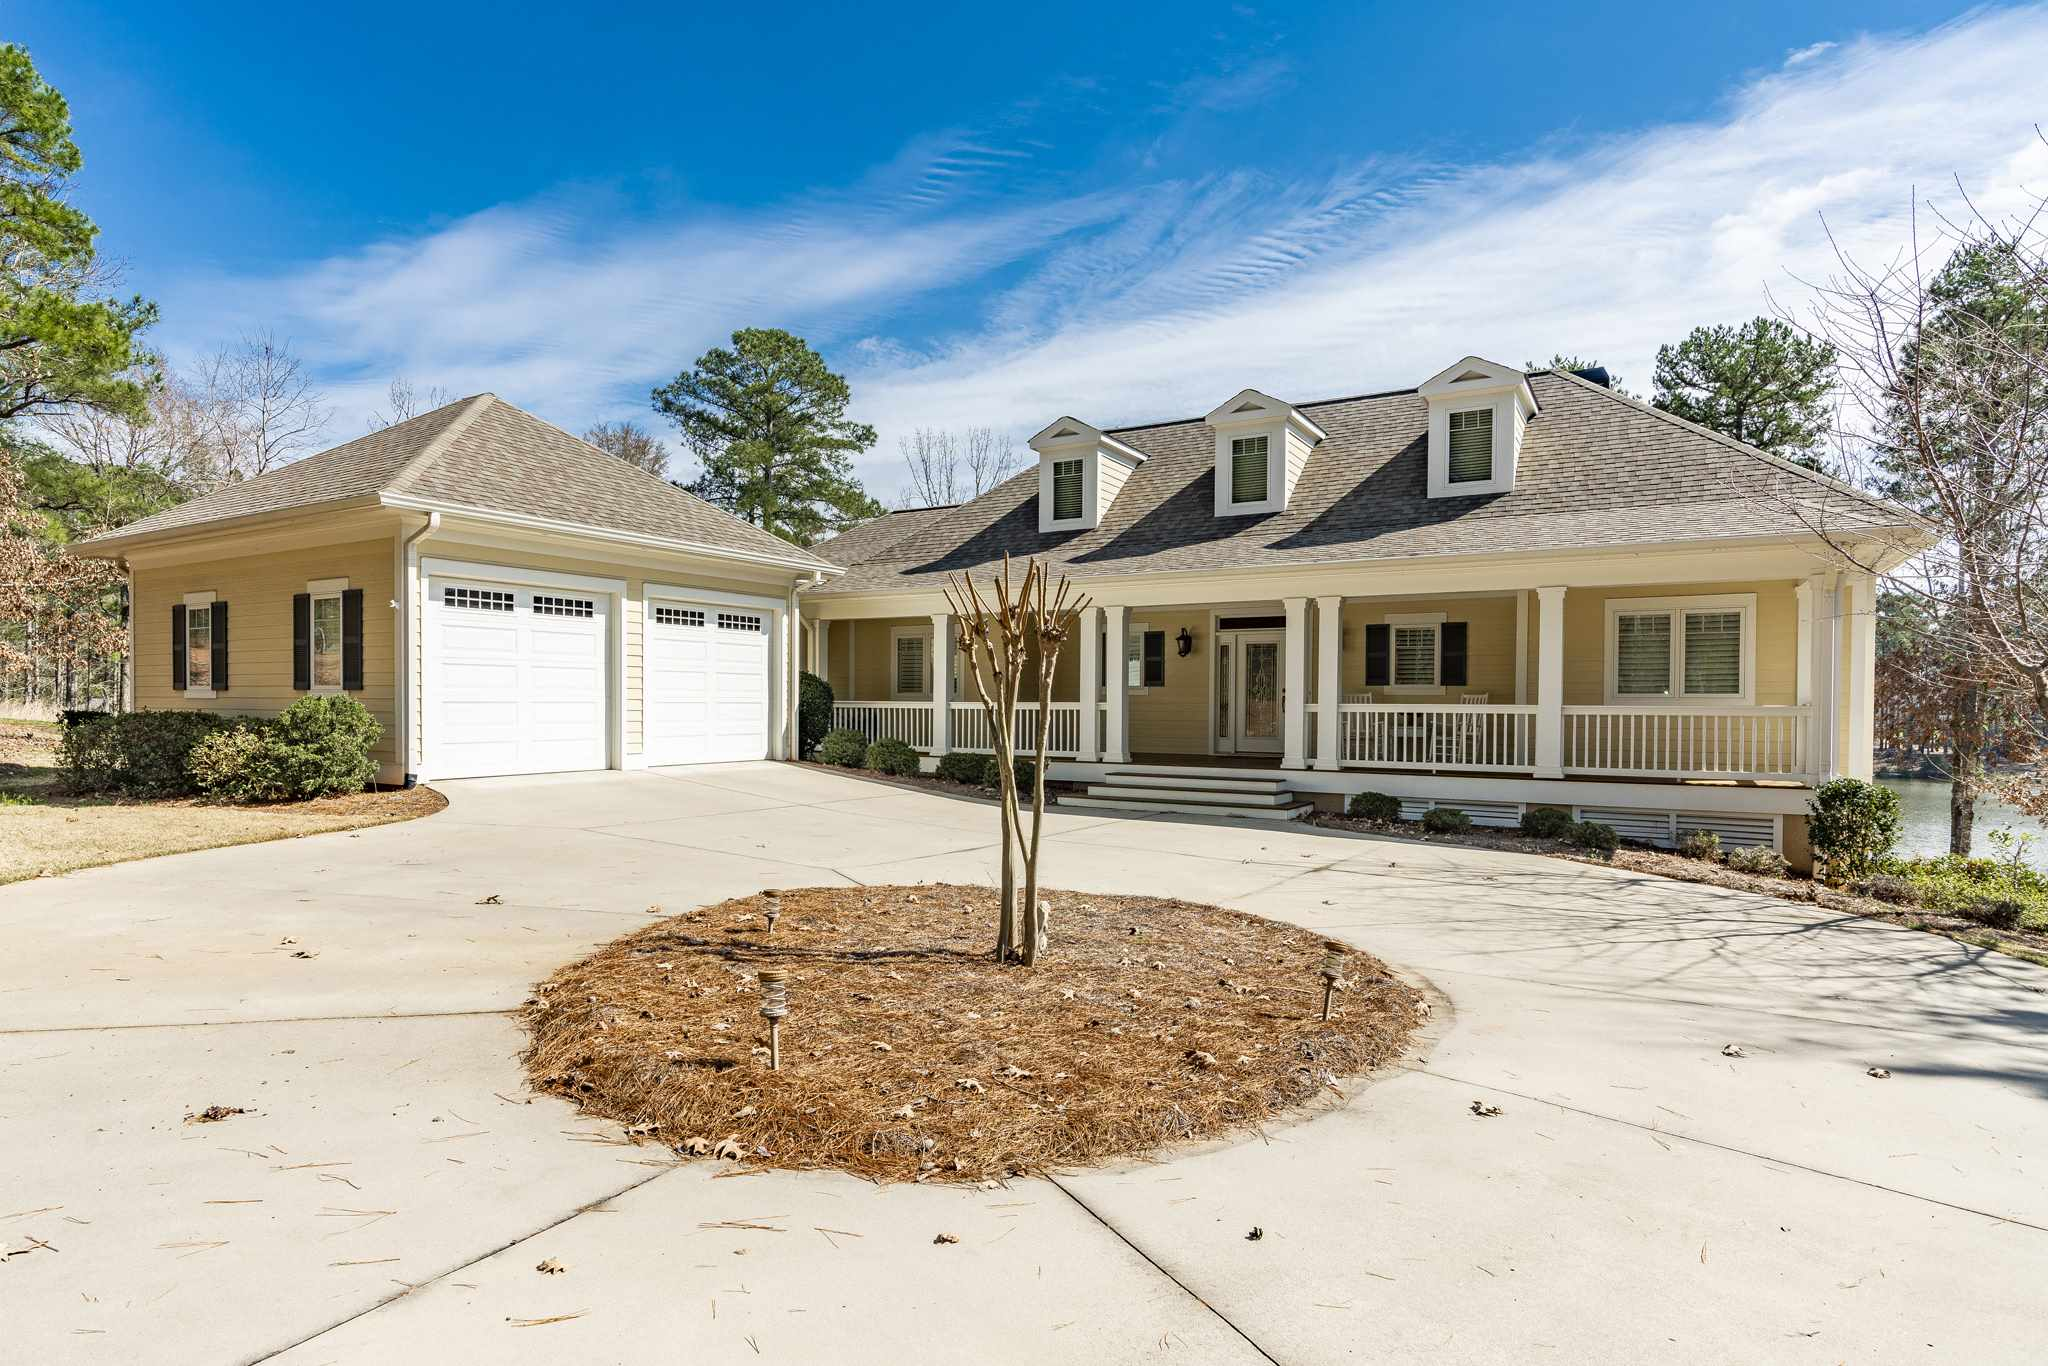 1050 BIG WATER POINT, Lake Oconee Reynolds Landing in Greene County, GA 30642 Home for Sale